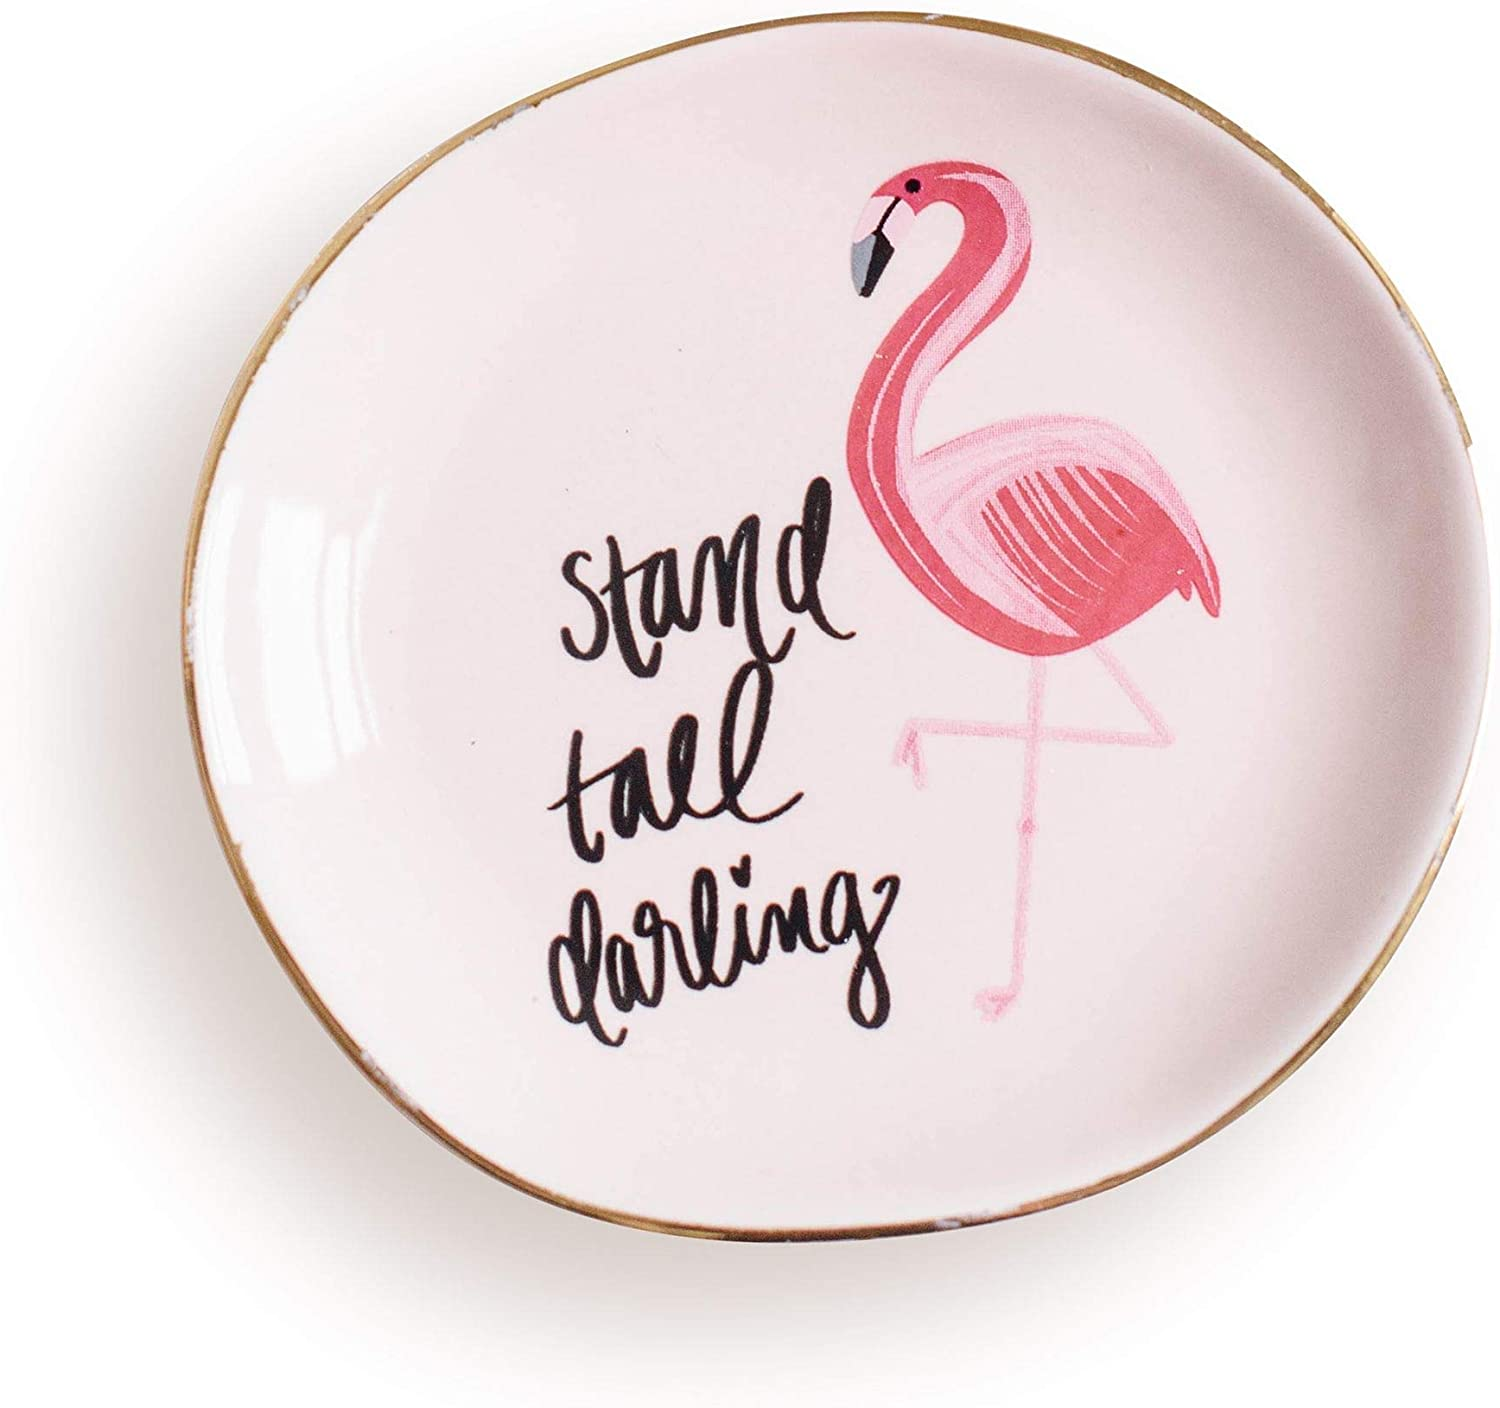 Stand Tall Darling Jewelry Dish Flamingo Trinket Tray Gift for Her Tropical Gold Office Decor Desk Storage Accessories Pink Office Decor Hand Drawn